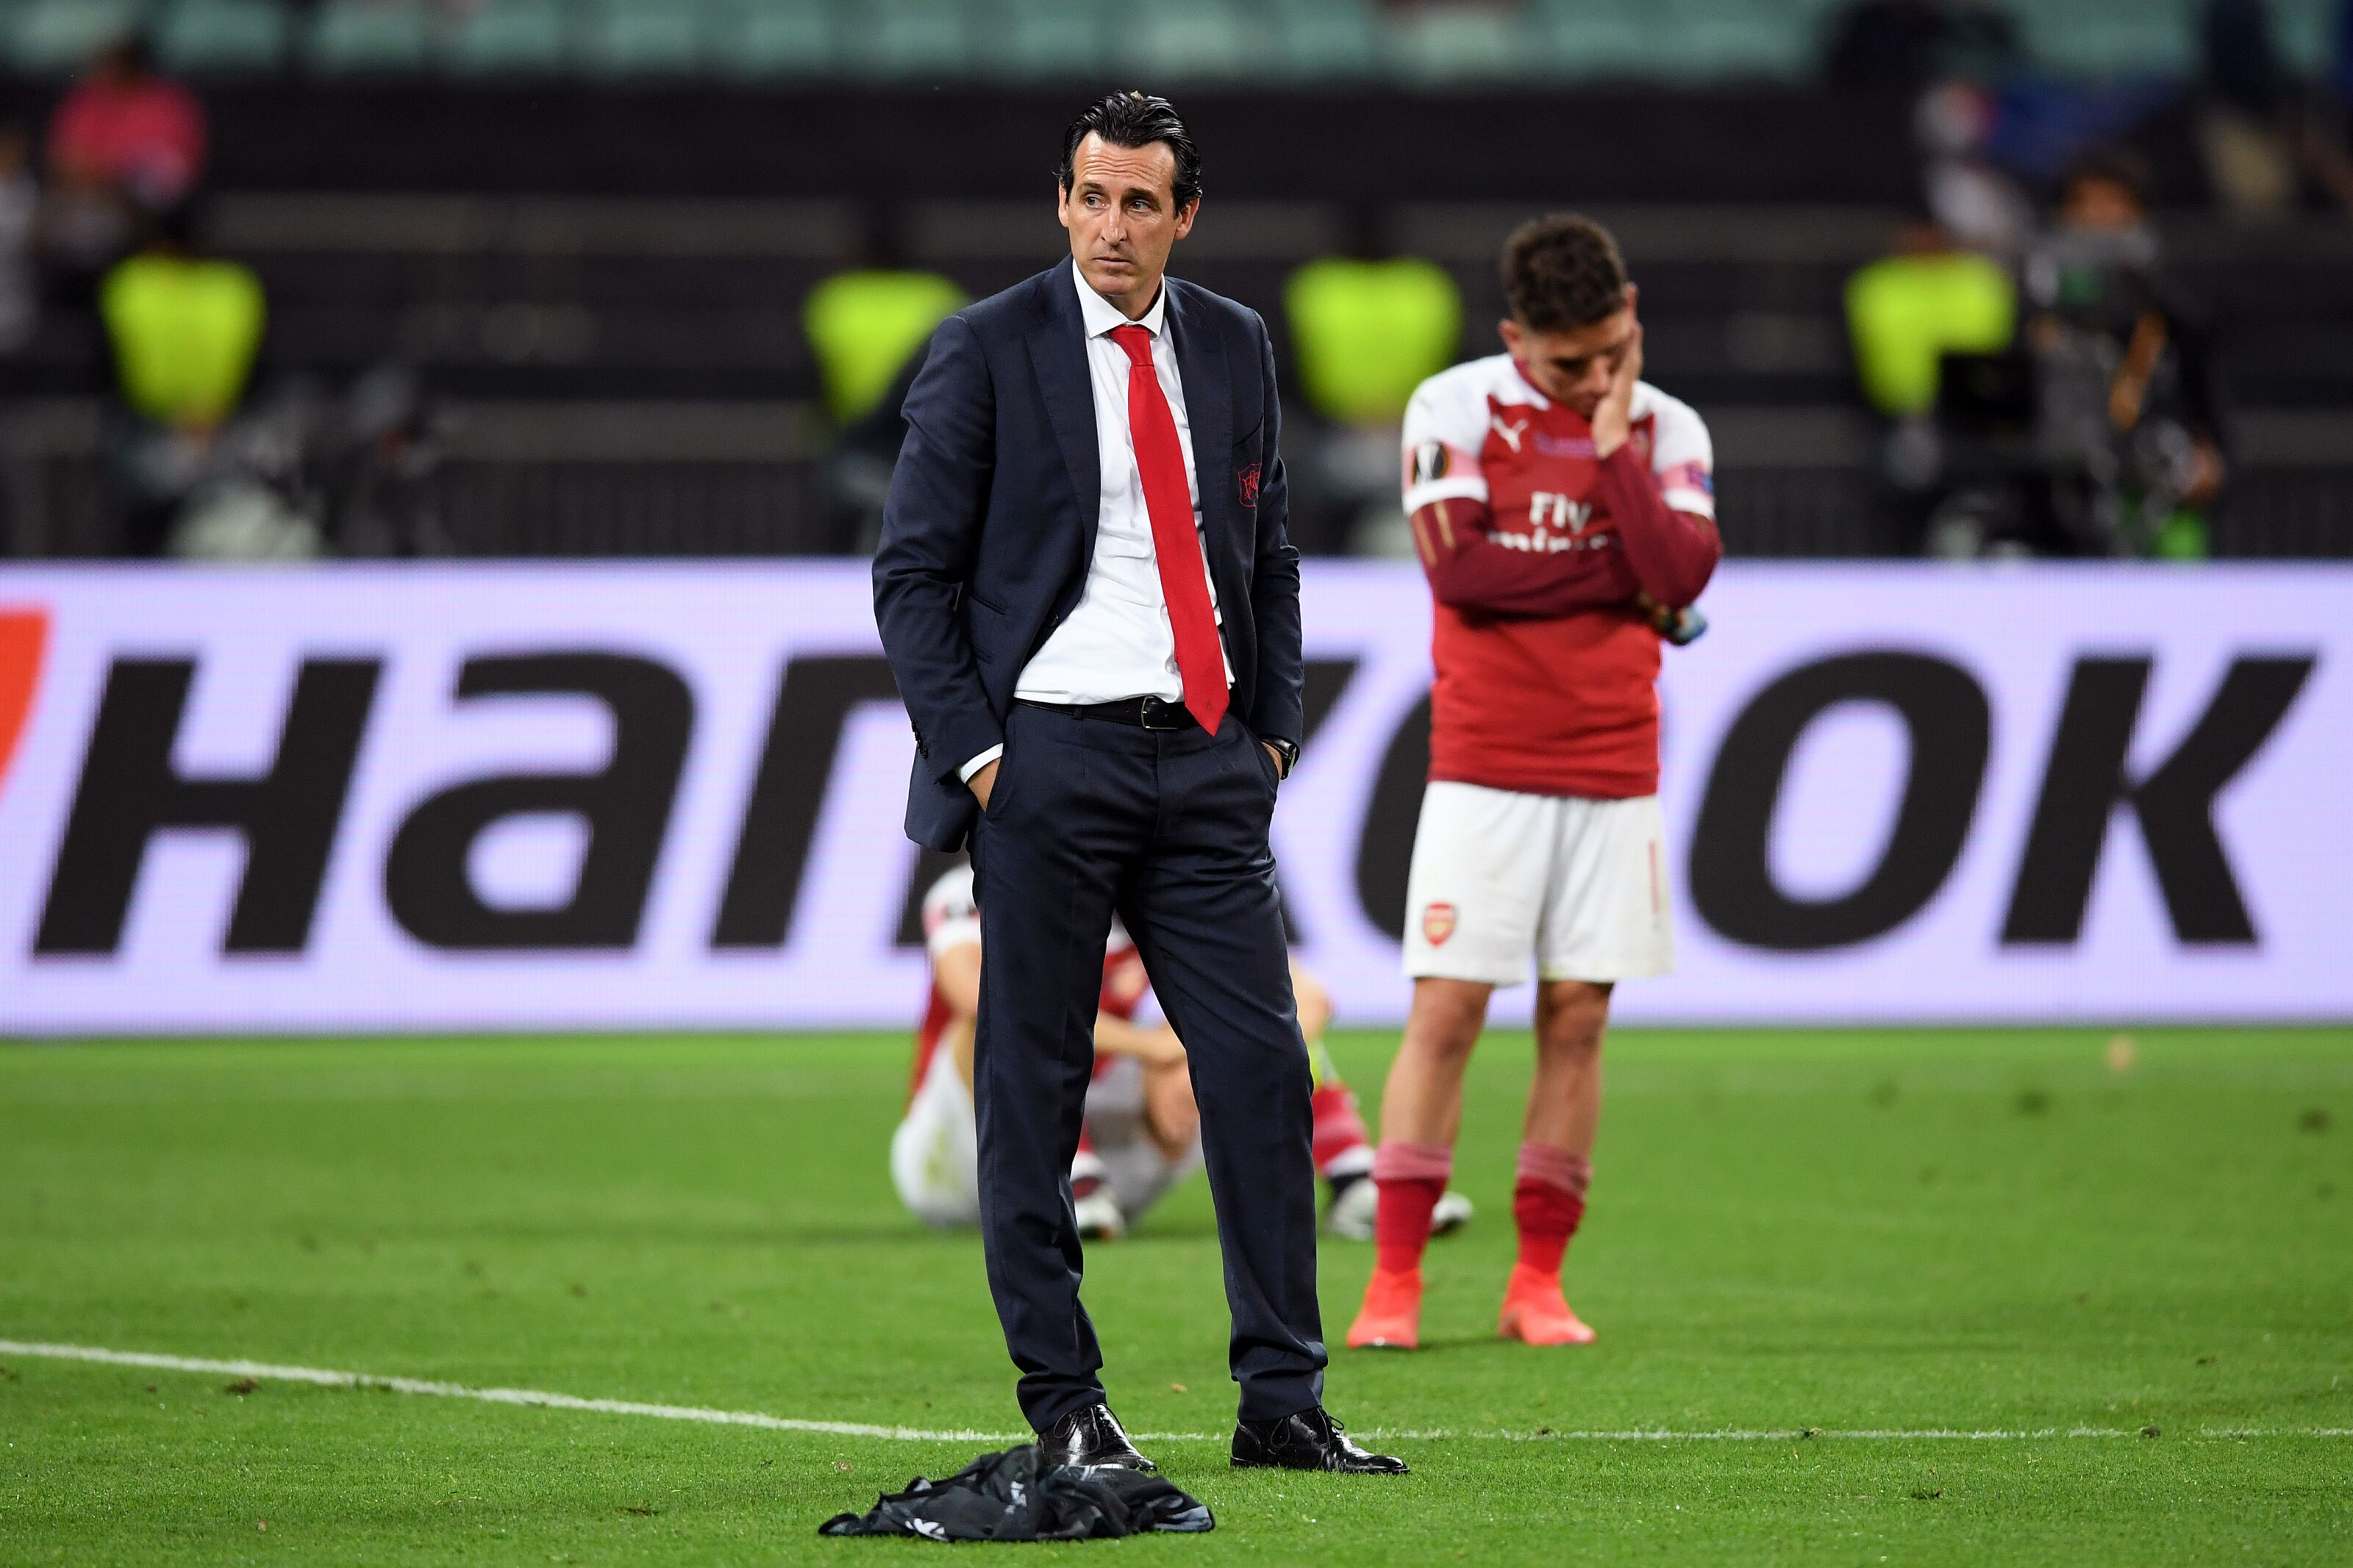 Arsenal: The clock is ticking for Unai Emery